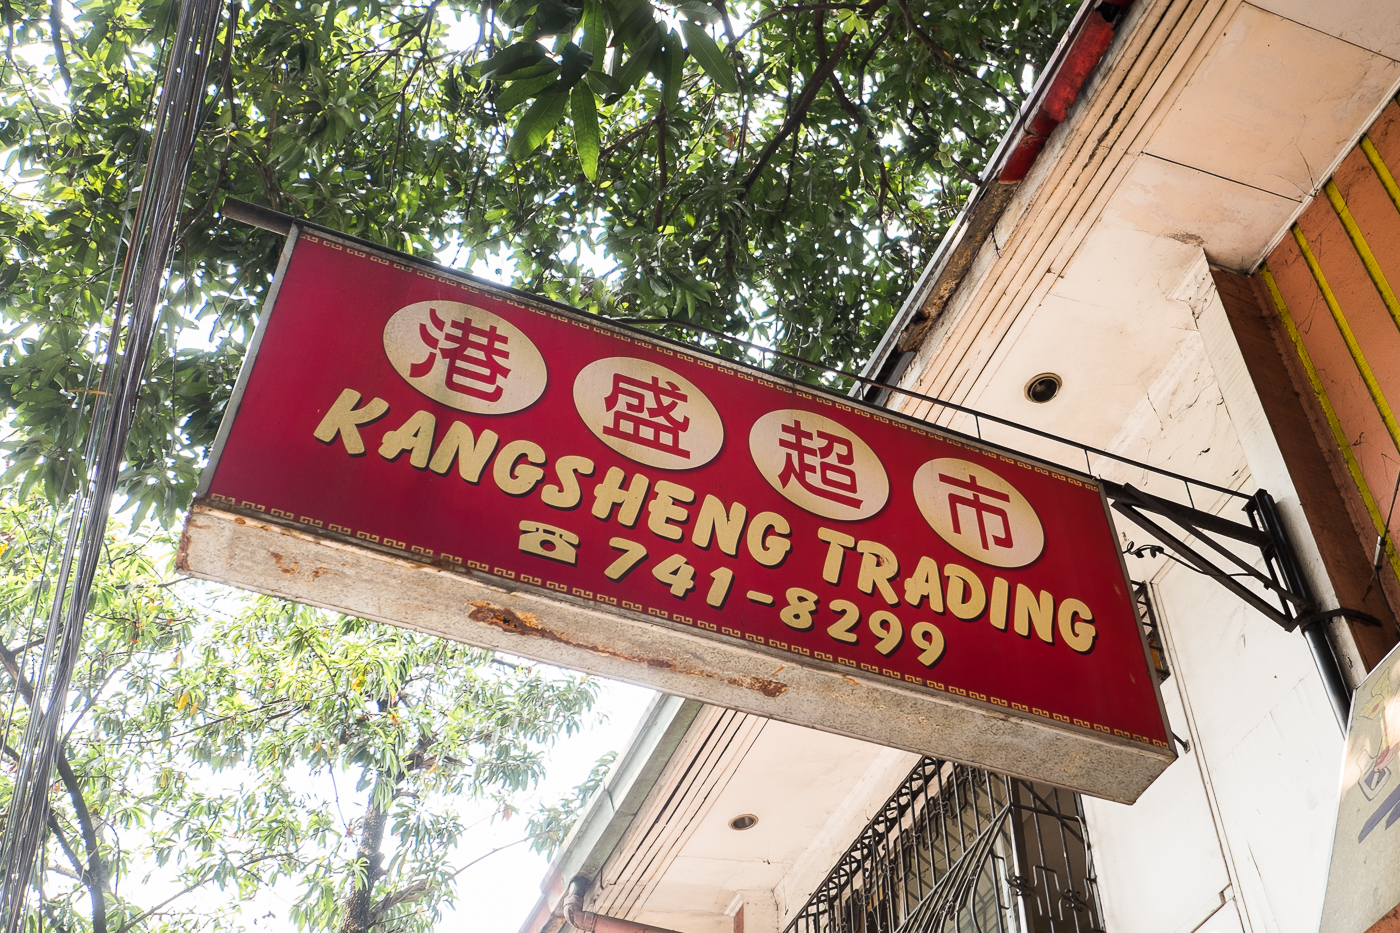 Kangsheng trading sells various goods from China, Thailand, and the US.